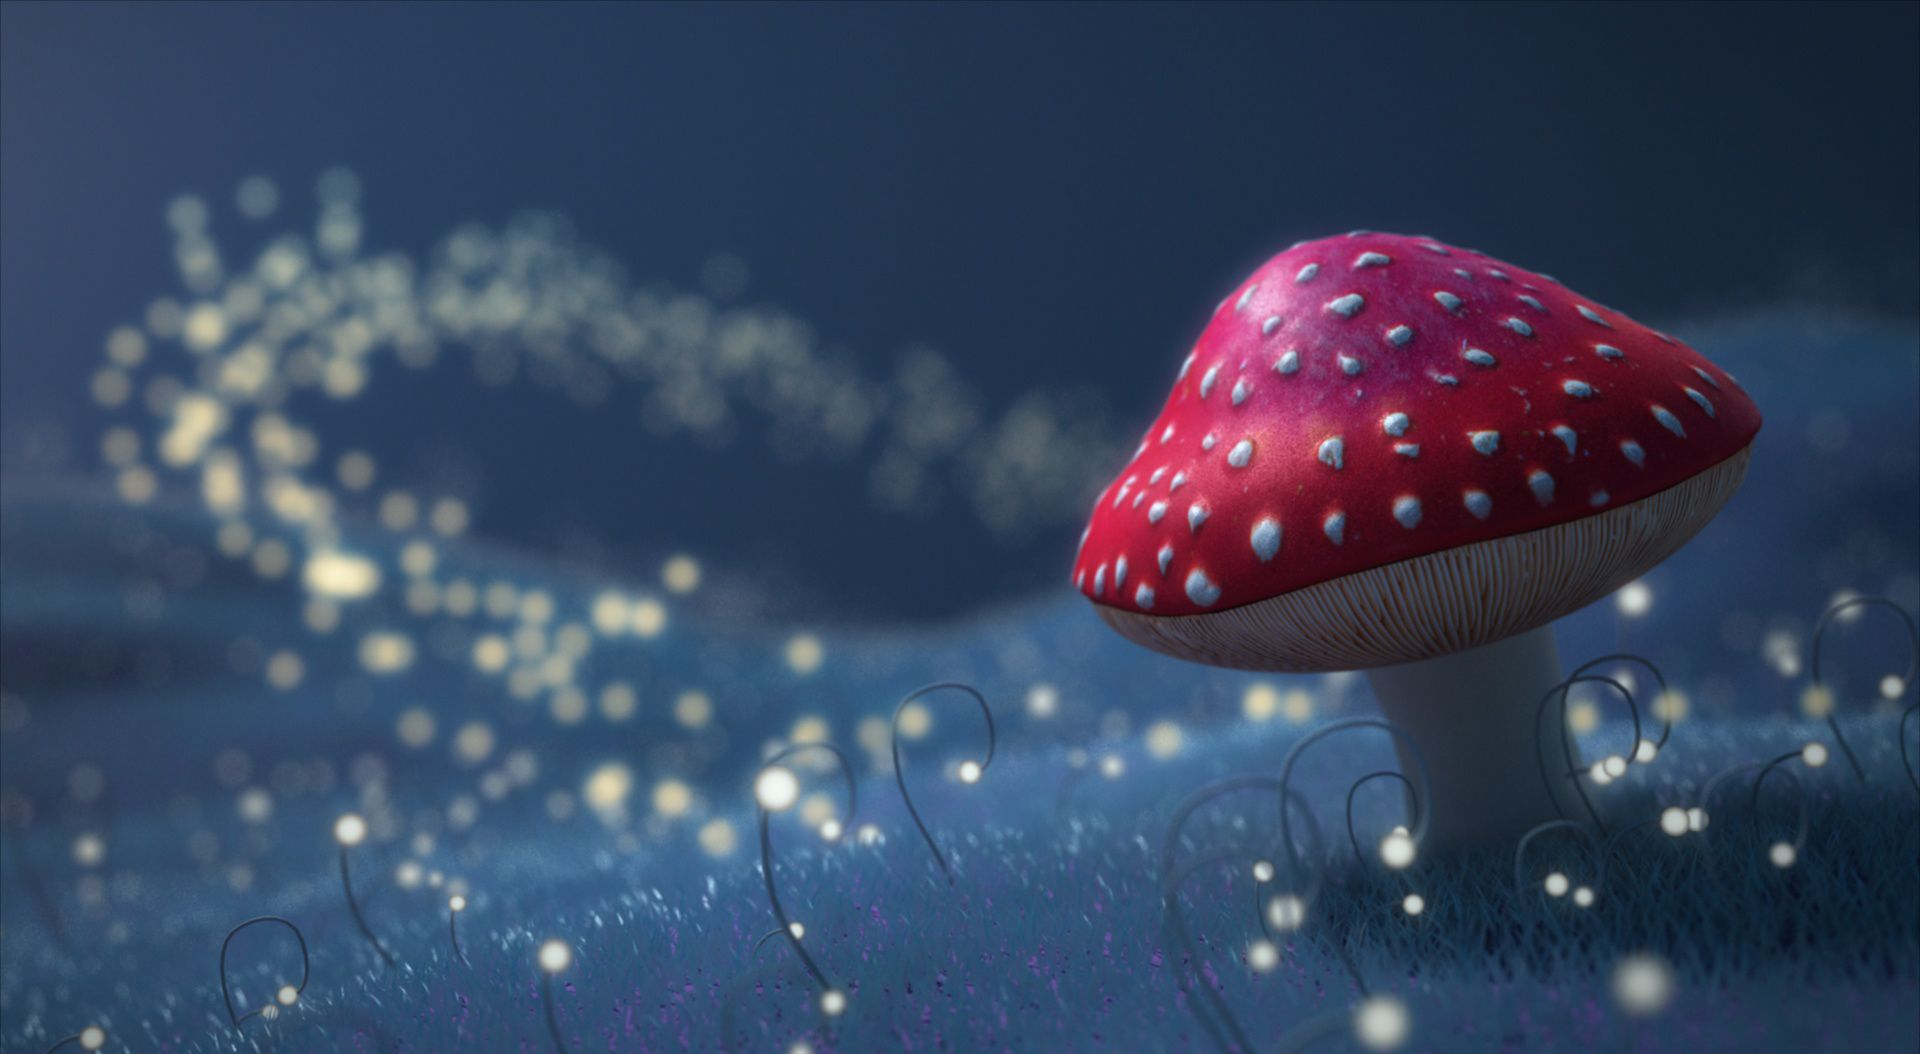 mushroom in a field of stars artsy pinterest